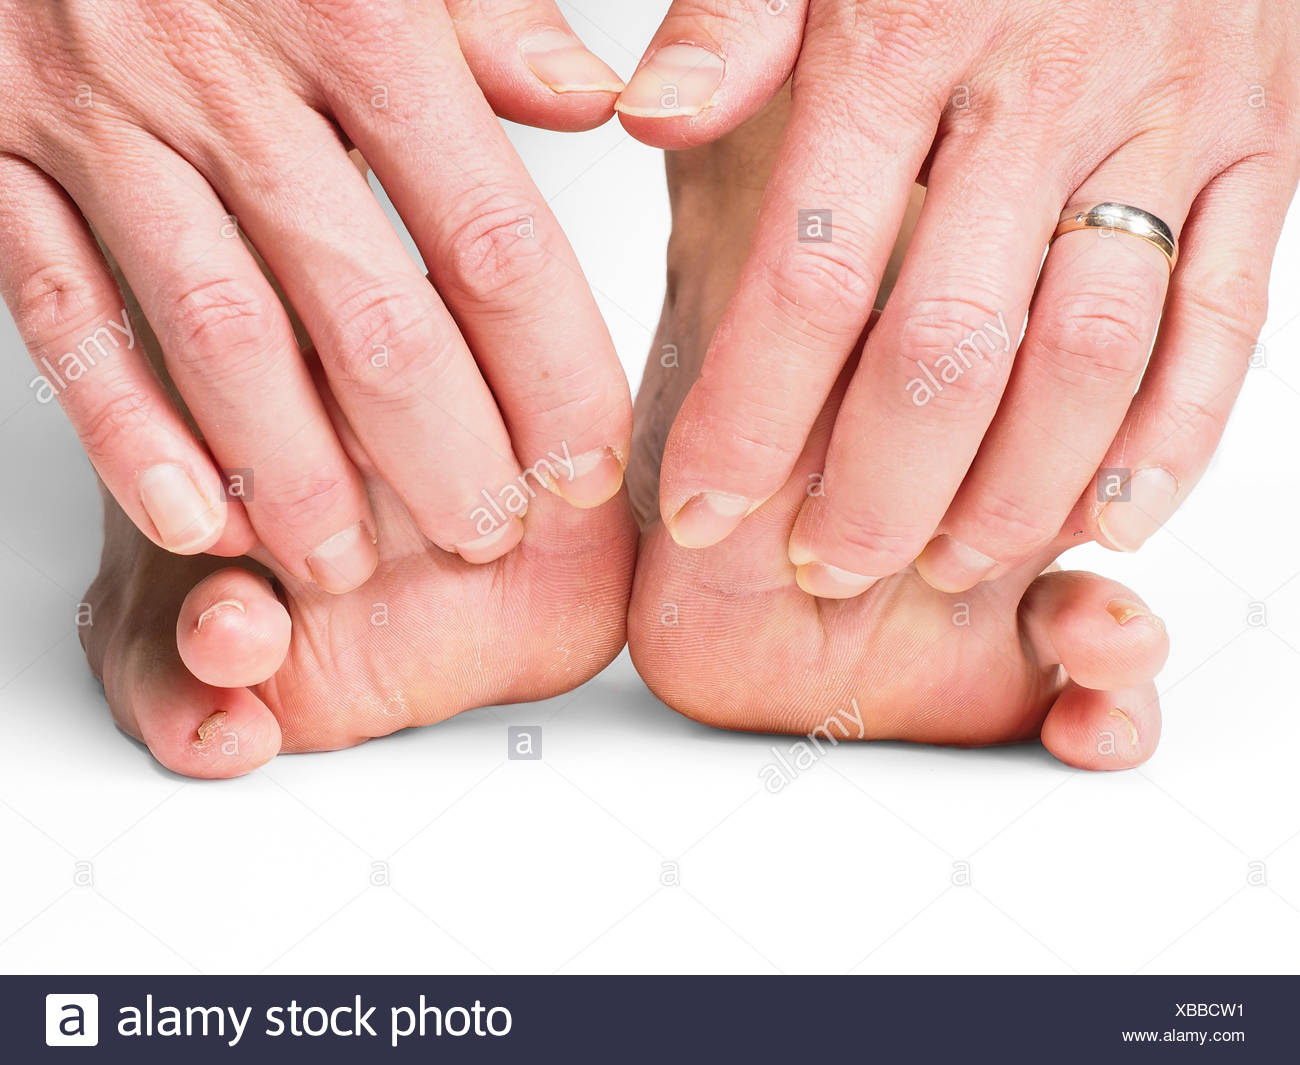 Hands pulling toes on barefoot feet - Stock Image